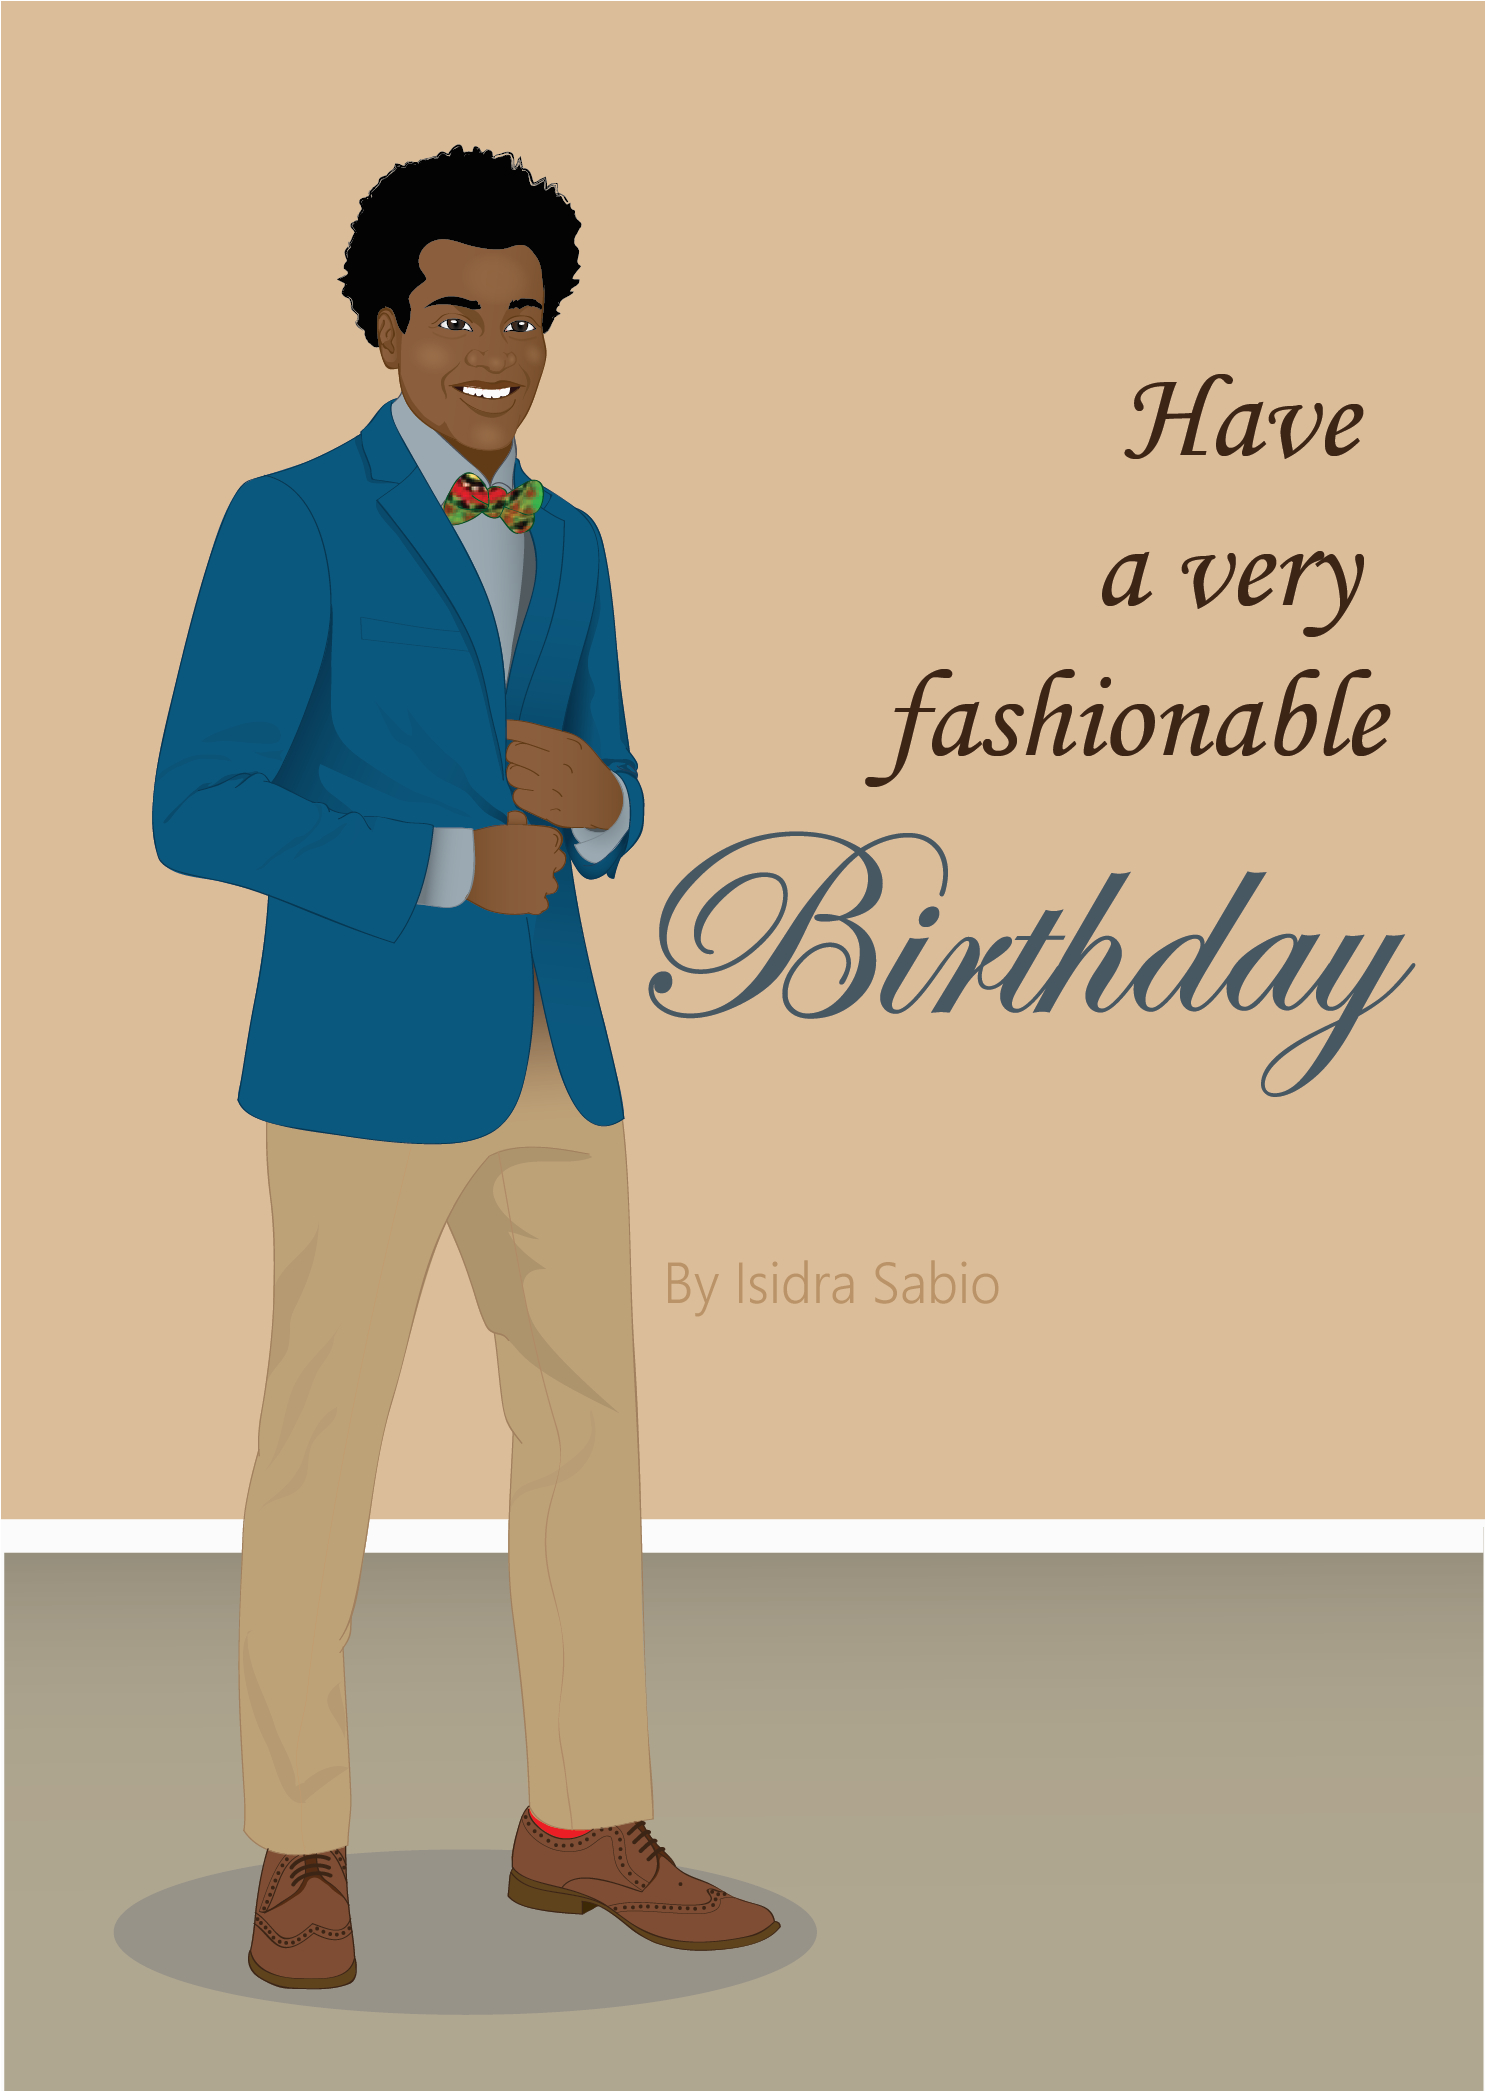 birthday man have a fashionable birthday card